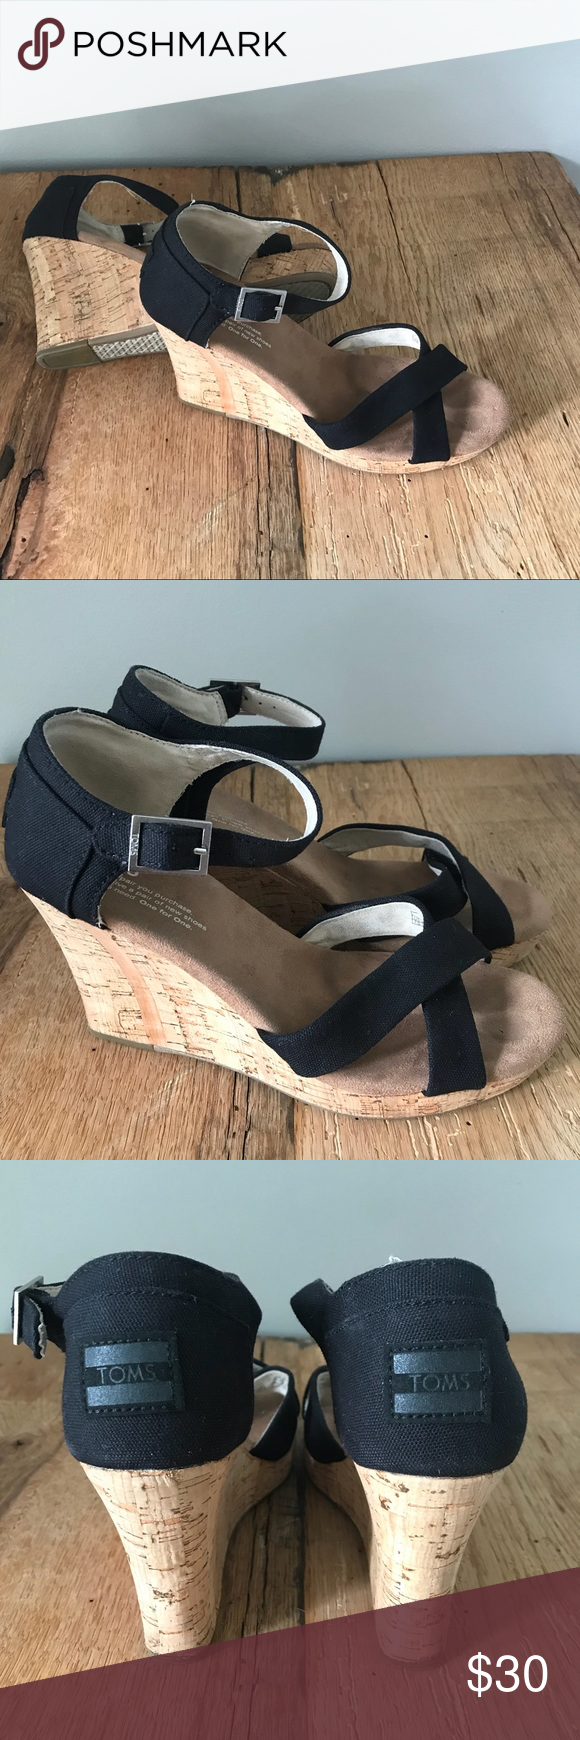 6b8ebd190d4 Toms Black Sienna Sandal Cork Wedge 7.5 Toms Good Condition Black Sandal  Cork Wedge. Love a Classic Toms shoe! Toms Shoes Sandals